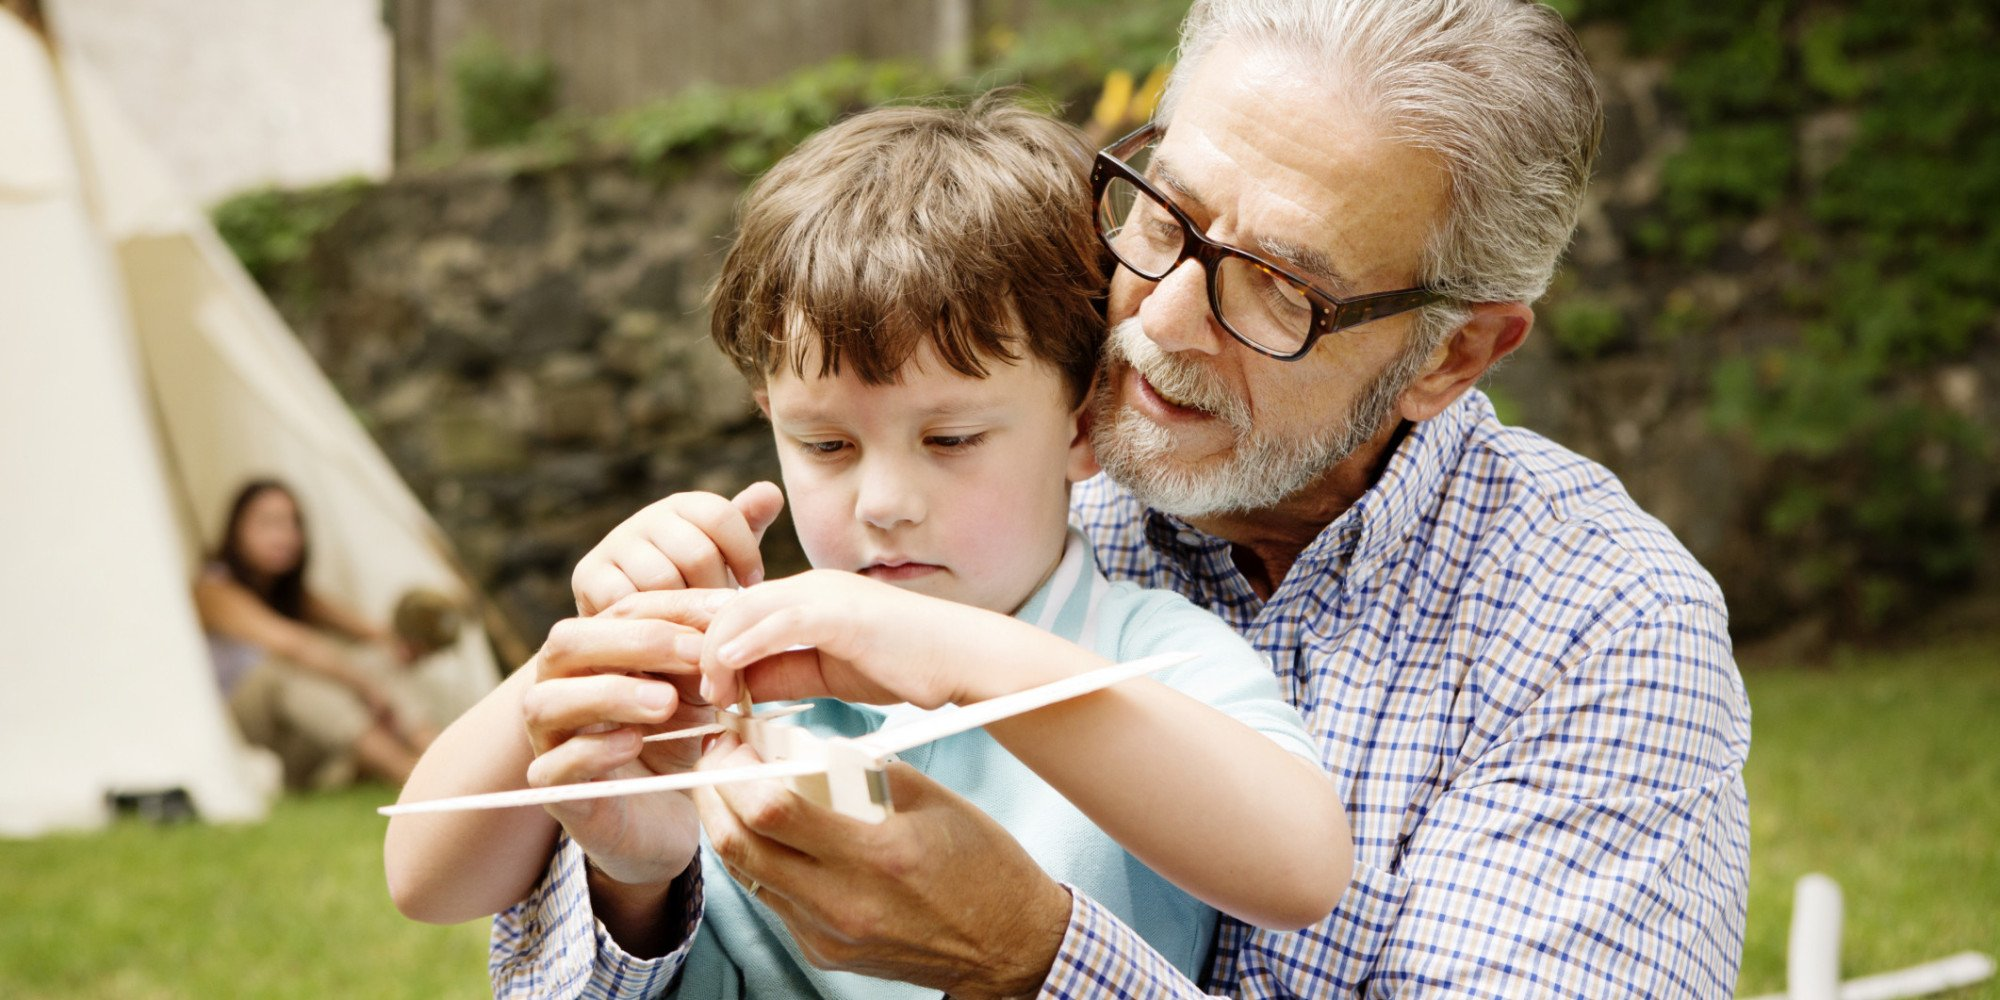 Grandfather and Boy Playing with Model Airplane